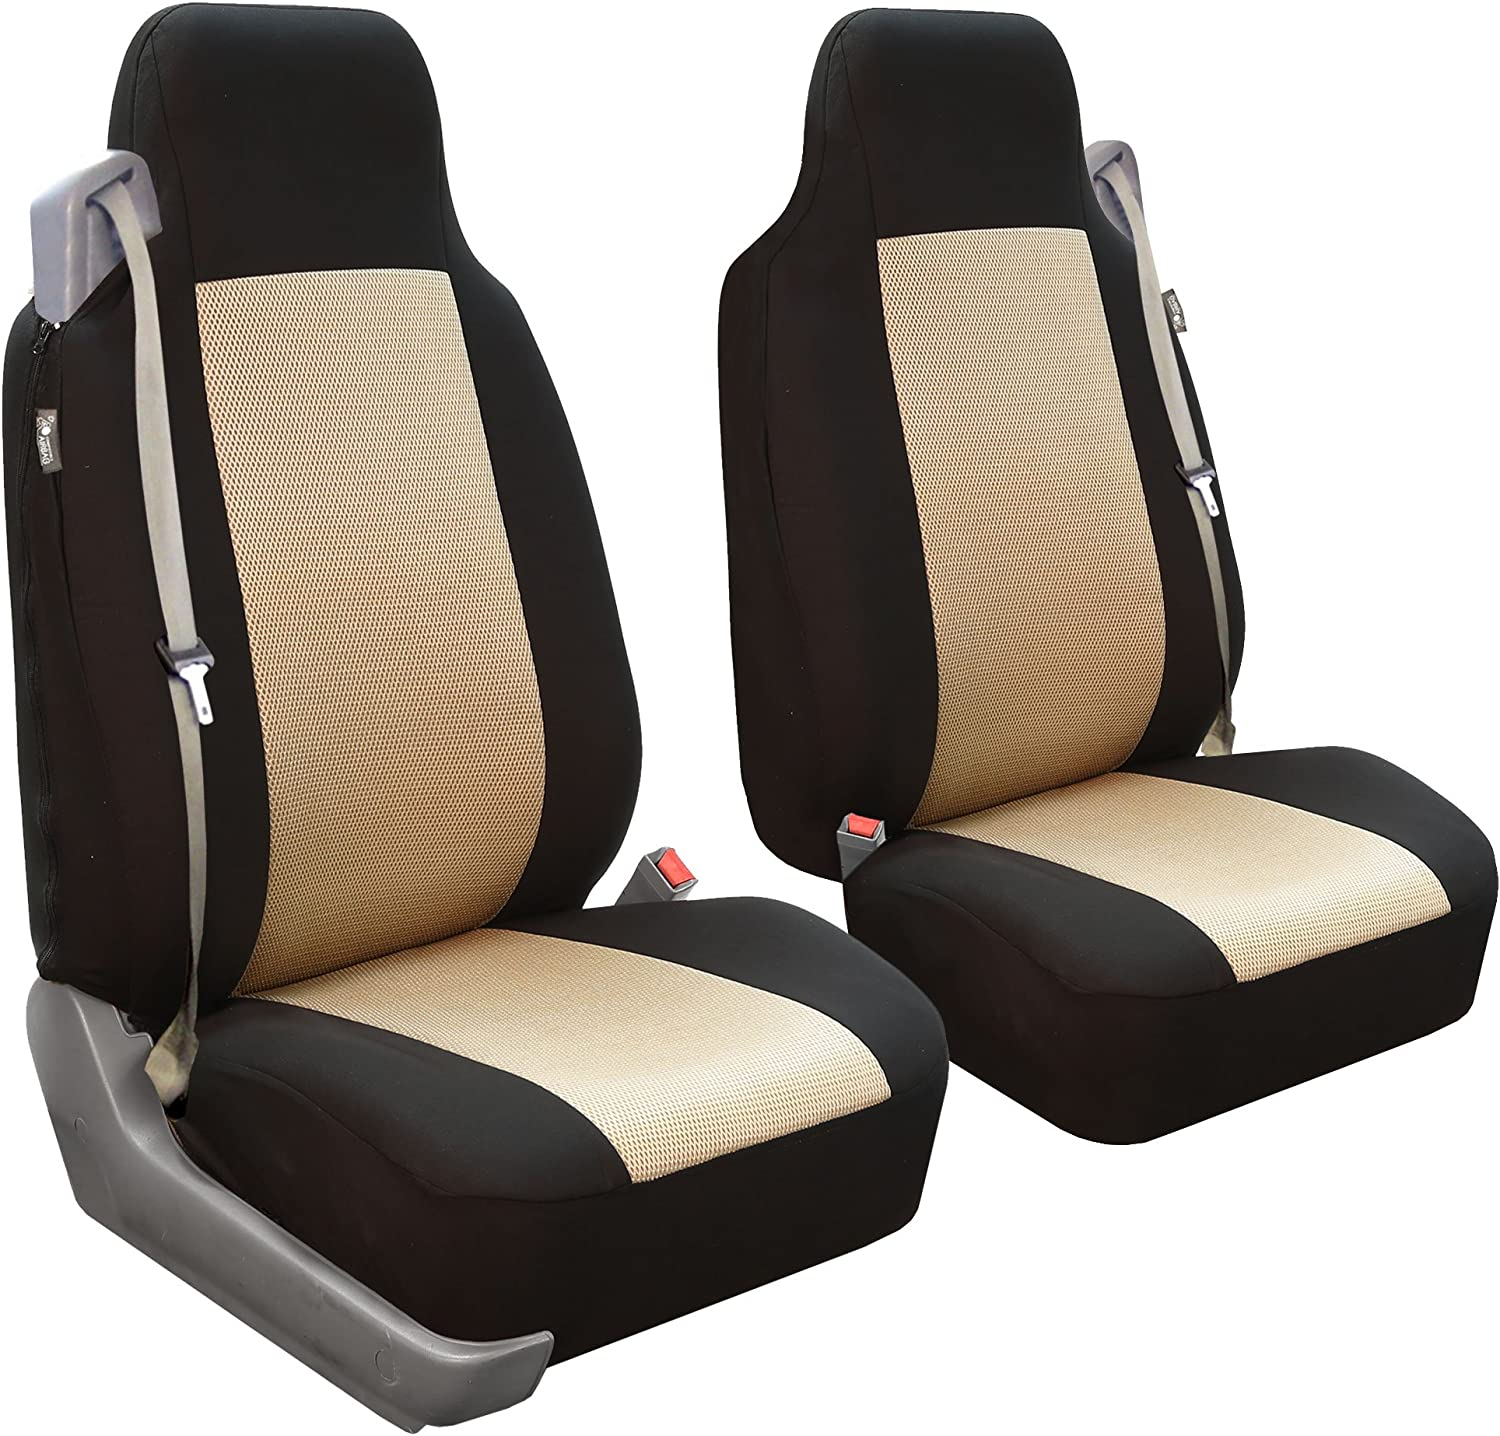 Amazon Com Fh Group Fb302beige102 Beige Classic Cloth Built In Seatbelt Compatible High Back Seat Cover Set Of 2 Automotive